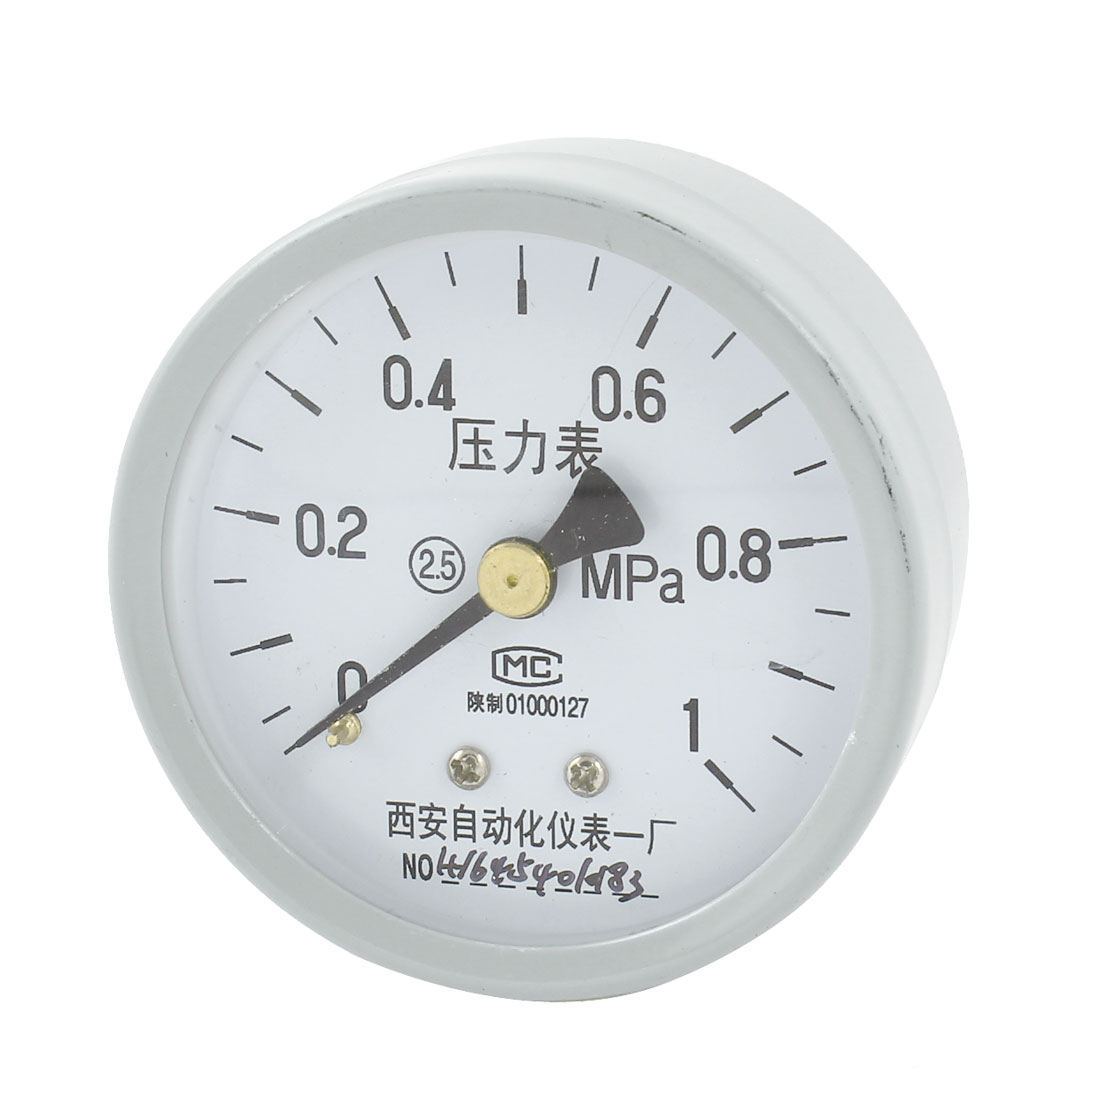 Metal Shell 0-1MPa 1/4PT Threaded Measuring Air Pressure Gauge 53mm Dial